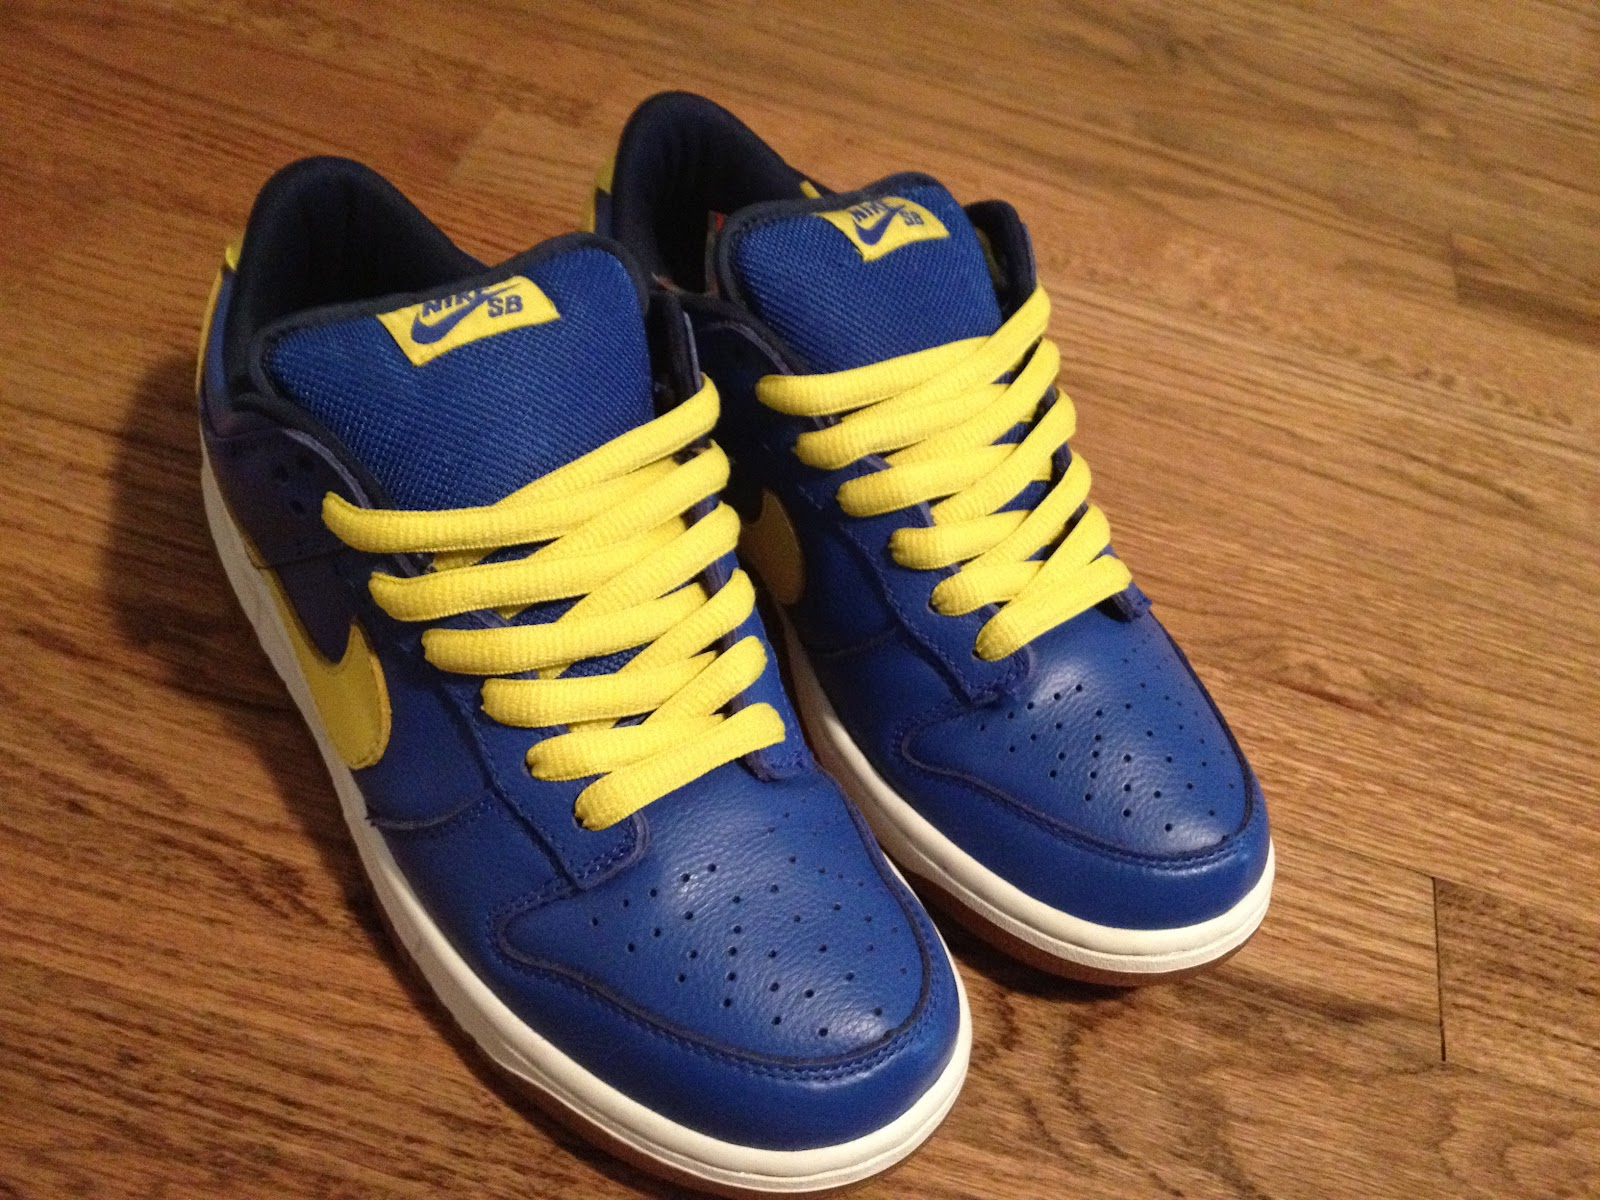 quality design 24639 abf8f New Pickup  Nike SB Boca Jr Dunk Low